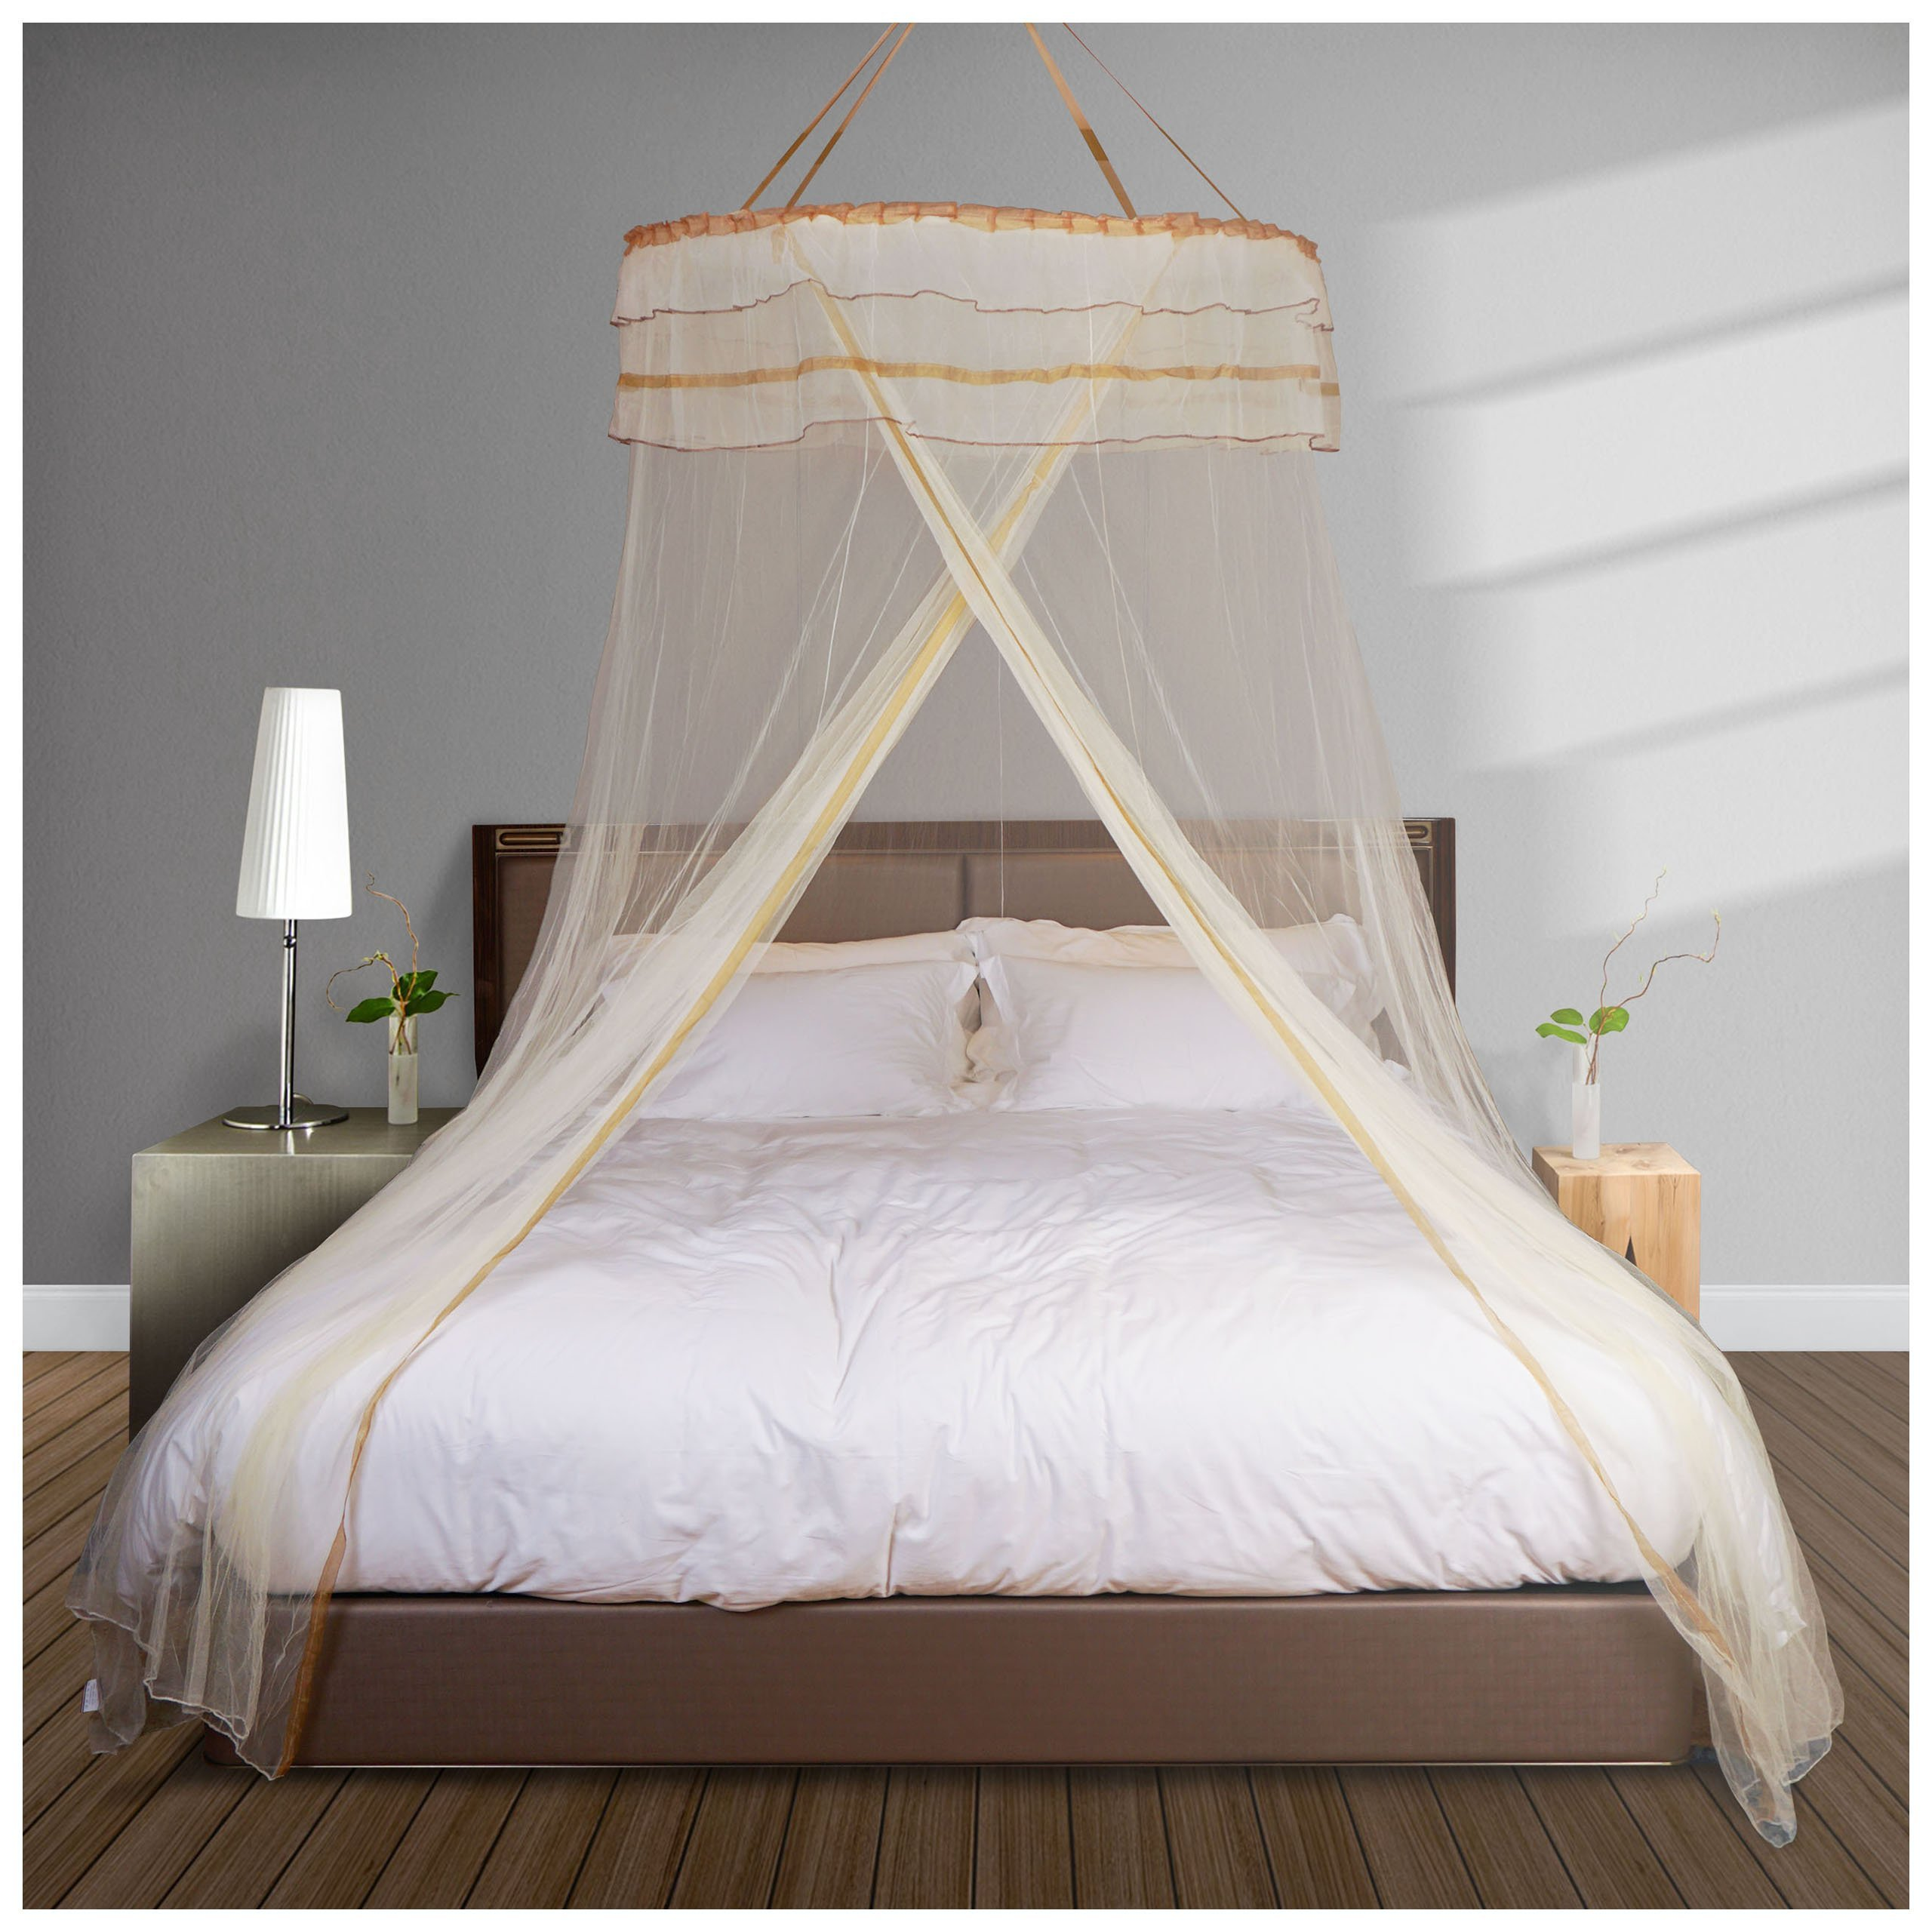 DIMPLES EXCEL Mosquito Net Bed for Double Fine Mesh Material flexible steel Roof of 4ft Diameter Popup with Hanging Kit (apricot)